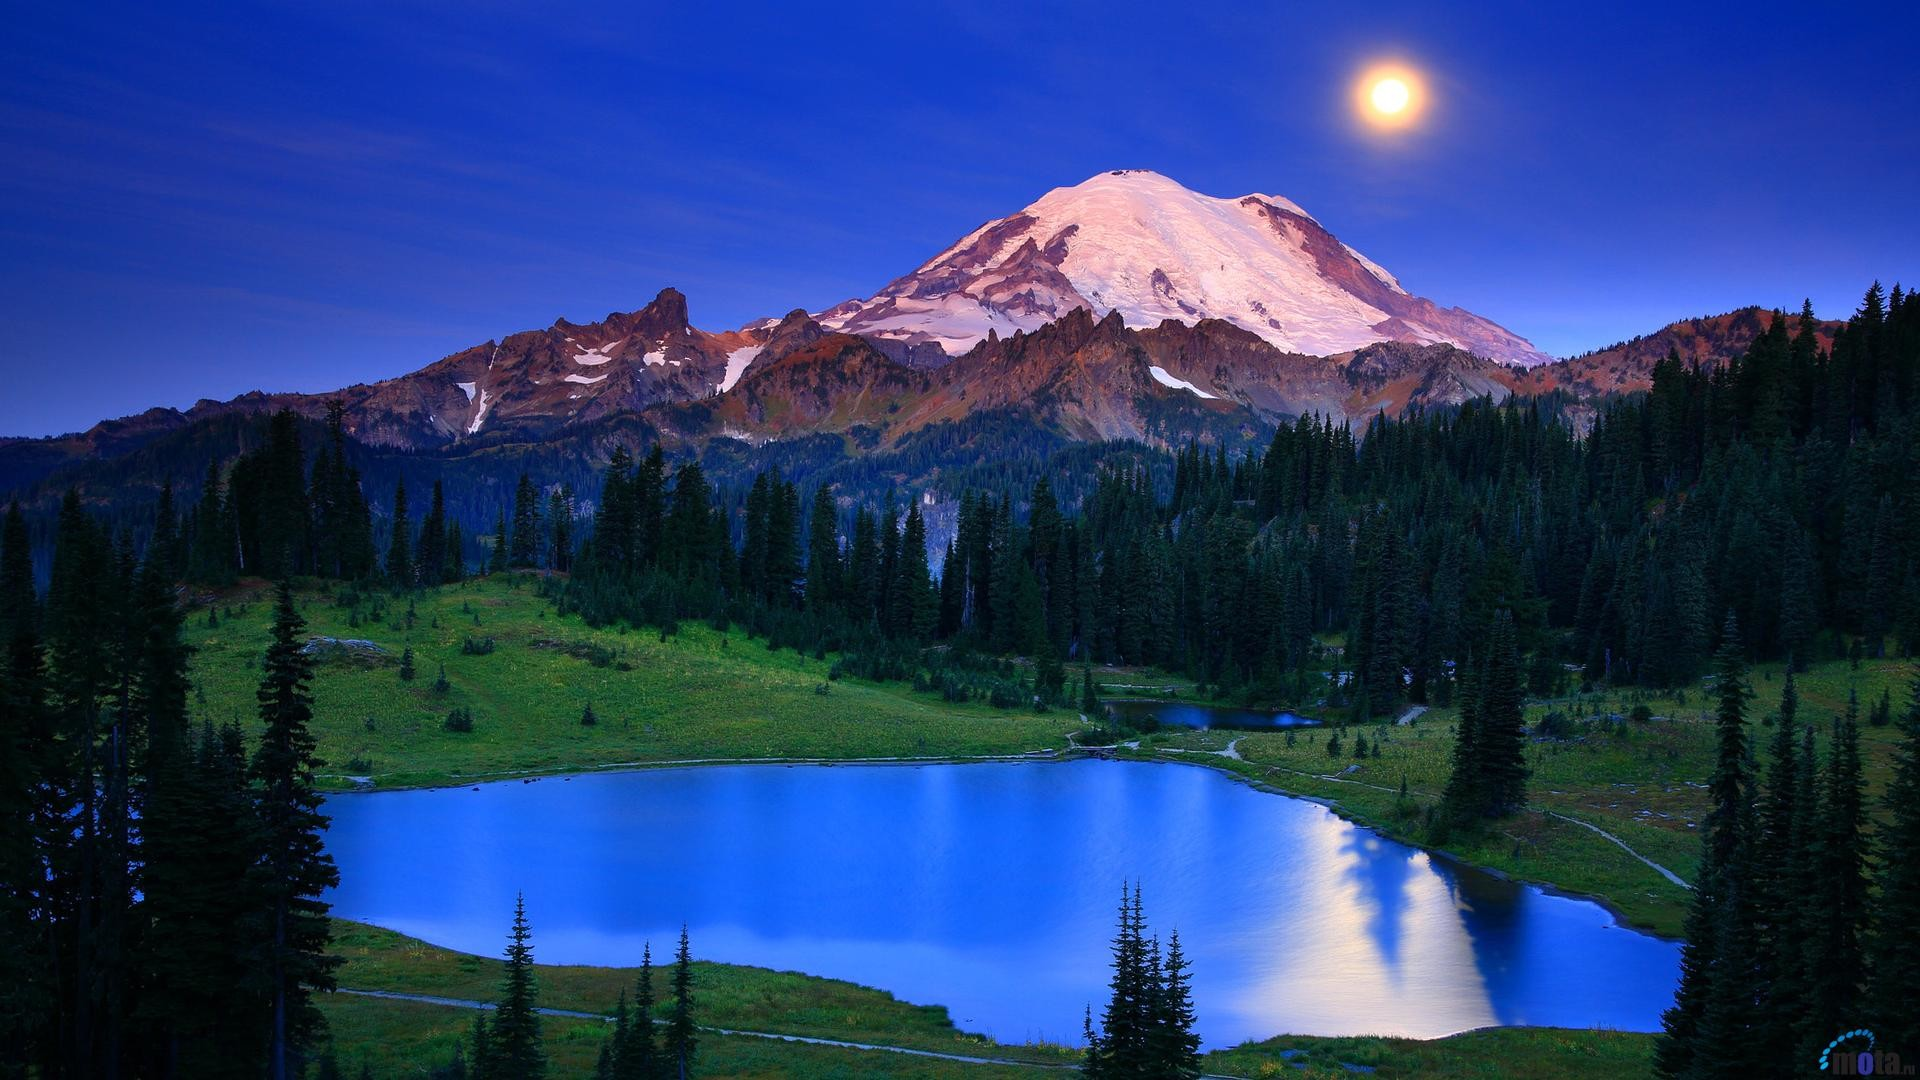 1920x1080 Mount Rainier Wallpaper 10 - 1920 X 1080